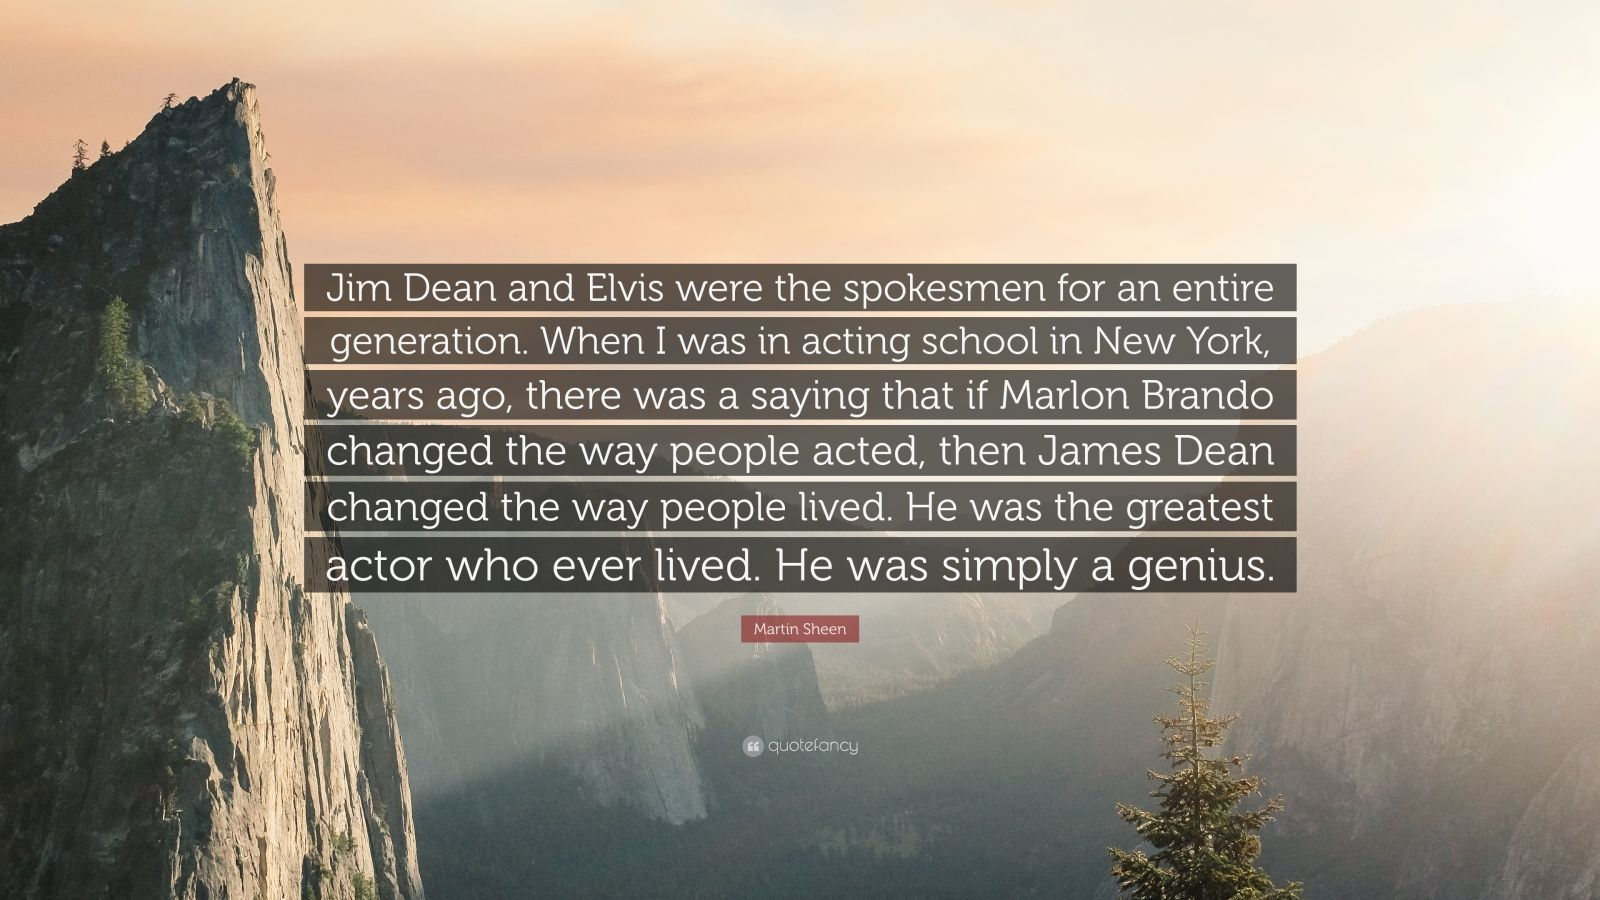 """Martin Sheen Quote: """"Jim Dean and Elvis were the spokesmen for an entire generation. When I was in acting school in New York, years ago, there was a saying that if Marlon Brando changed the way people acted, then James Dean changed the way people lived. He was the greatest actor who ever lived. He was simply a genius."""""""